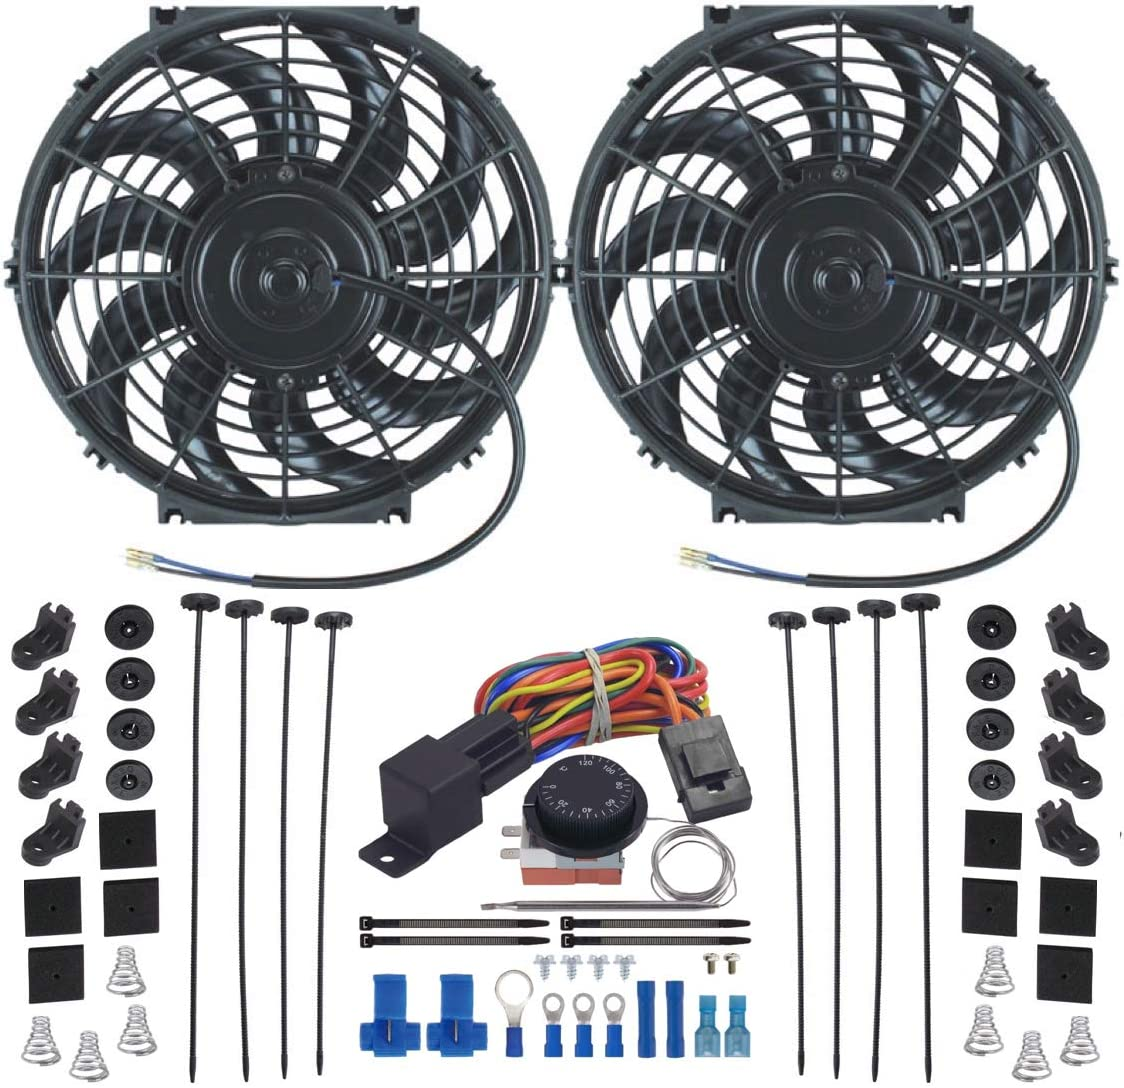 """American Volt Dual Reversible 12V Electric Engine Radiator Cooling Fan & Adjustable Thermostat Switch Kit (11"""" Inch)"""